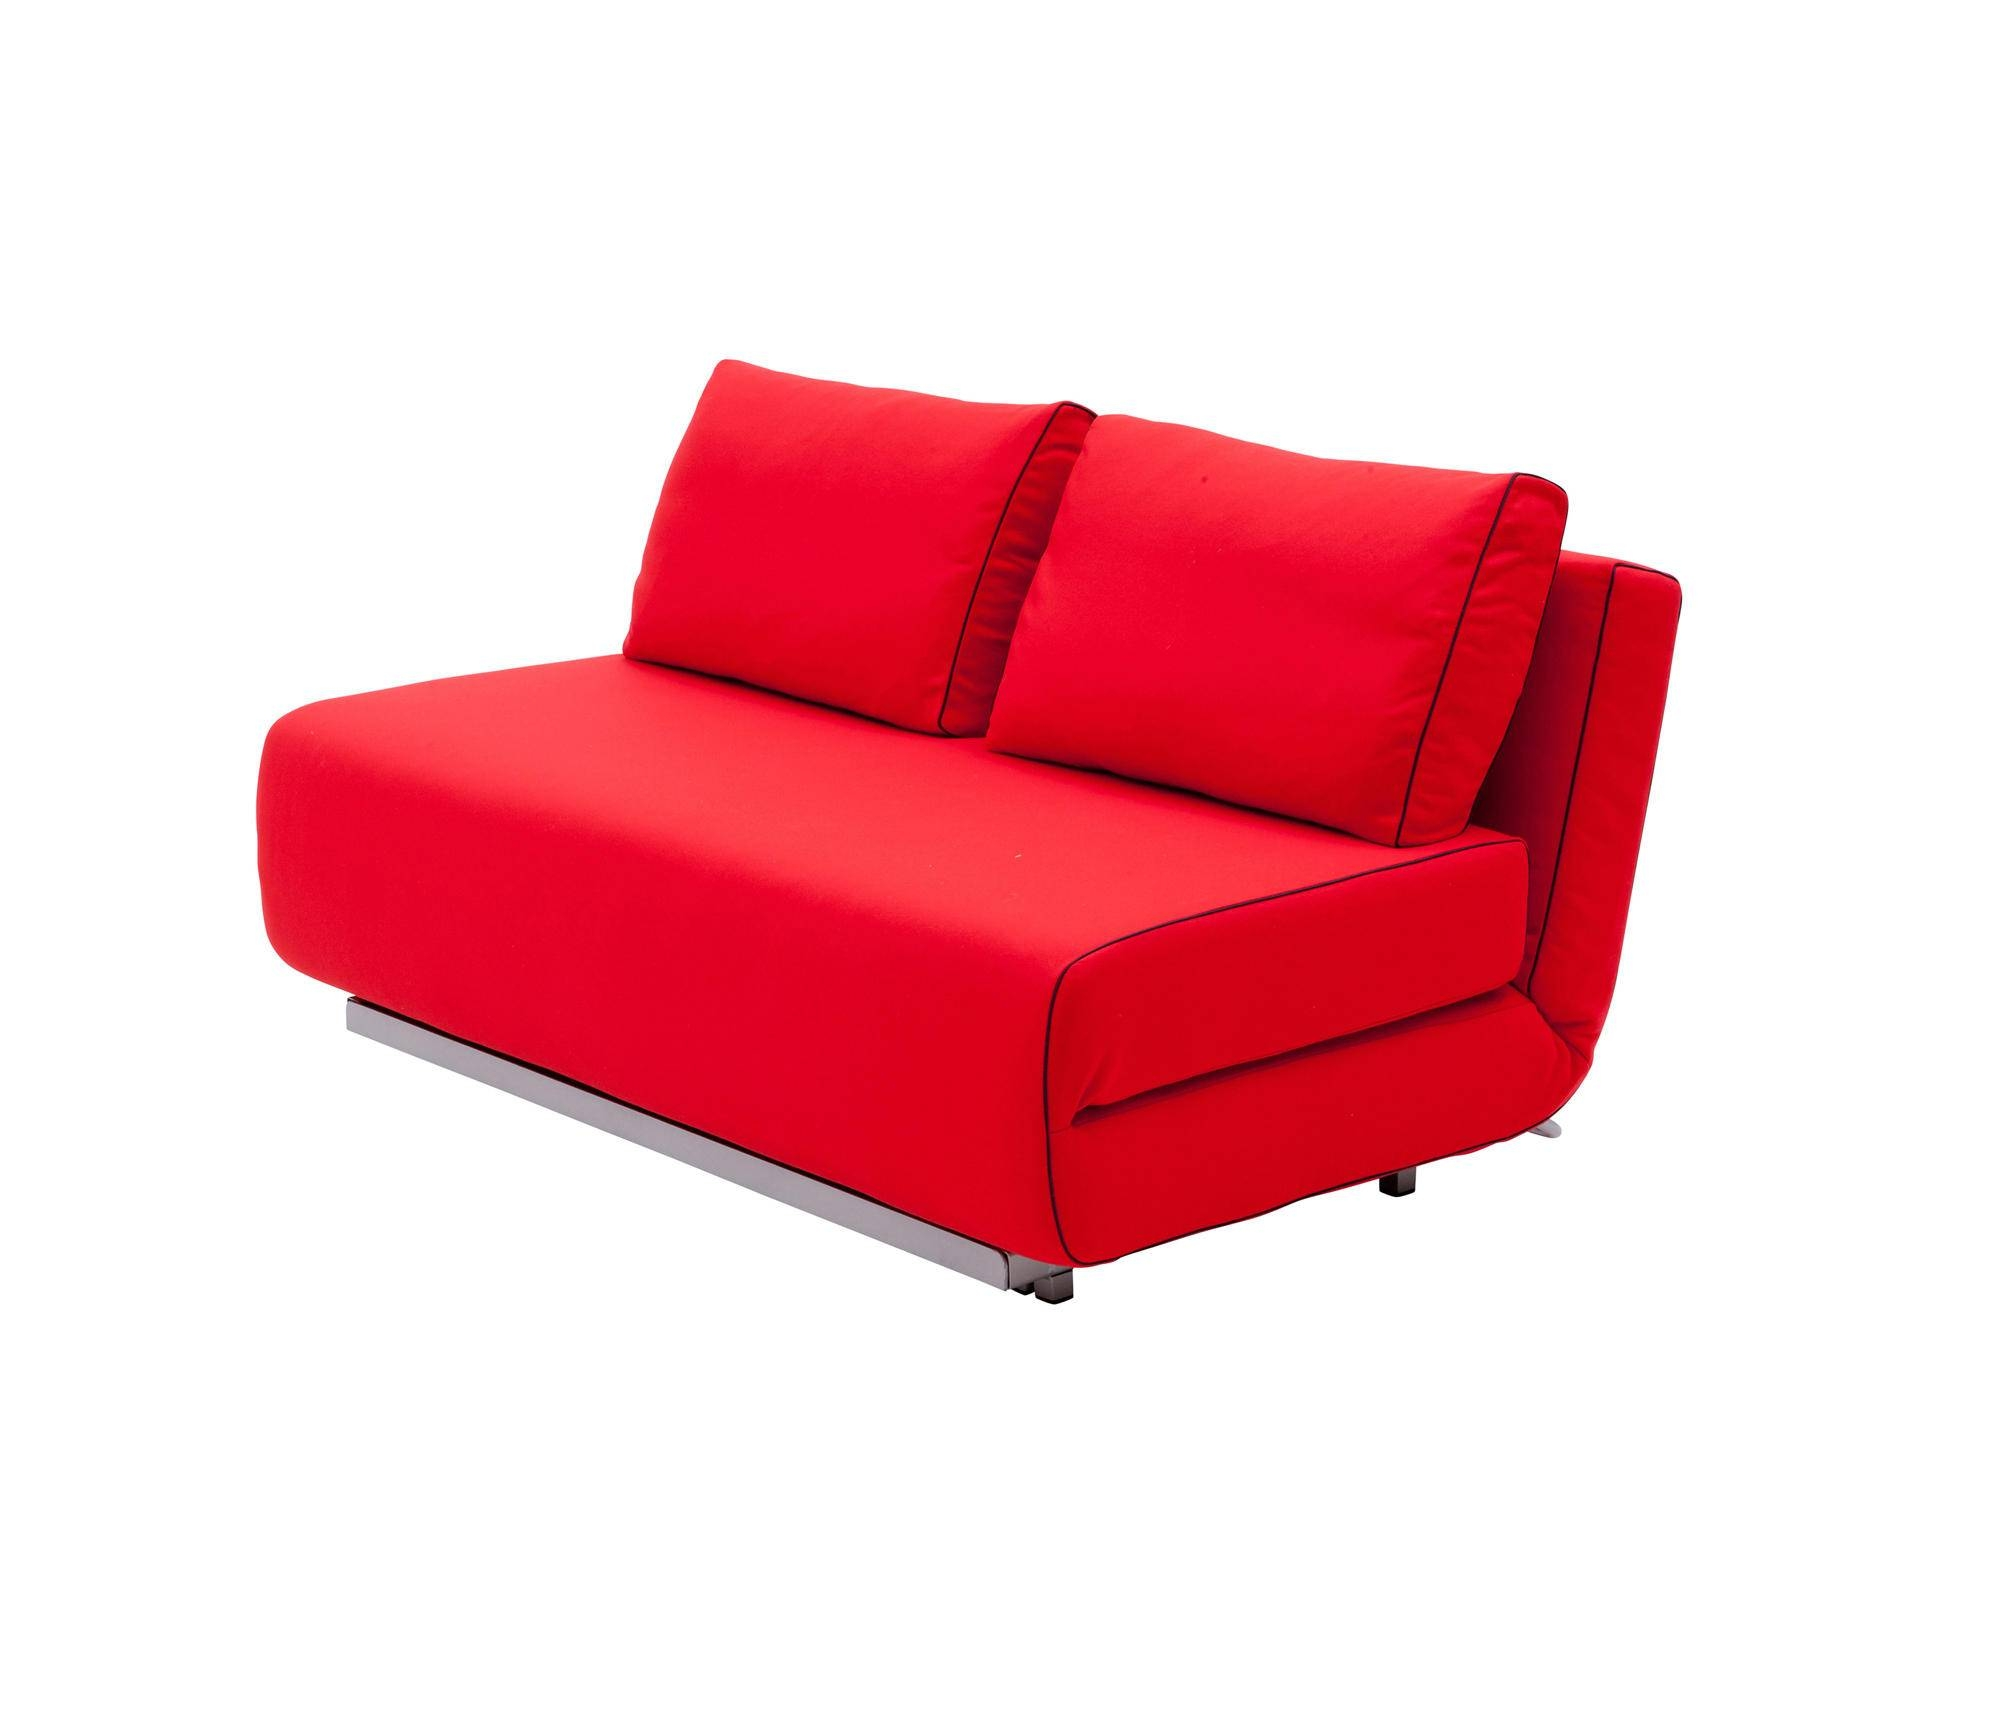 City Sofa – Sofa Beds From Softline A/s | Architonic Pertaining To City Sofa Beds (View 5 of 30)